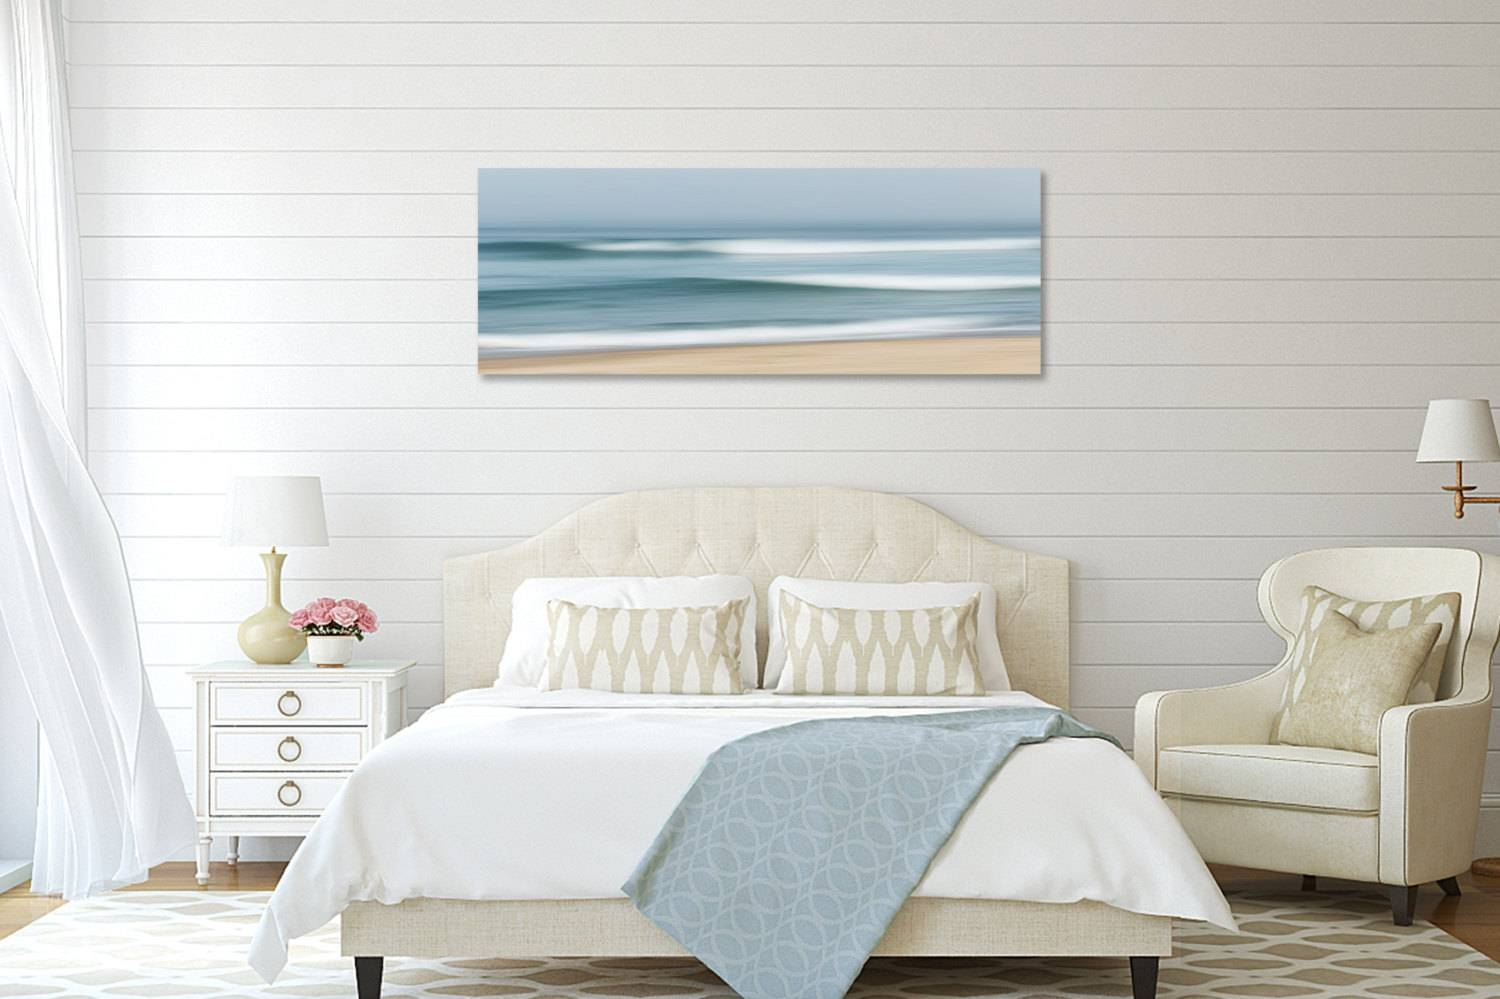 Large Abstract Beach Canvas Wall Art Ocean Seascape Within Most Current Beach Wall Art For Bedroom (View 19 of 20)